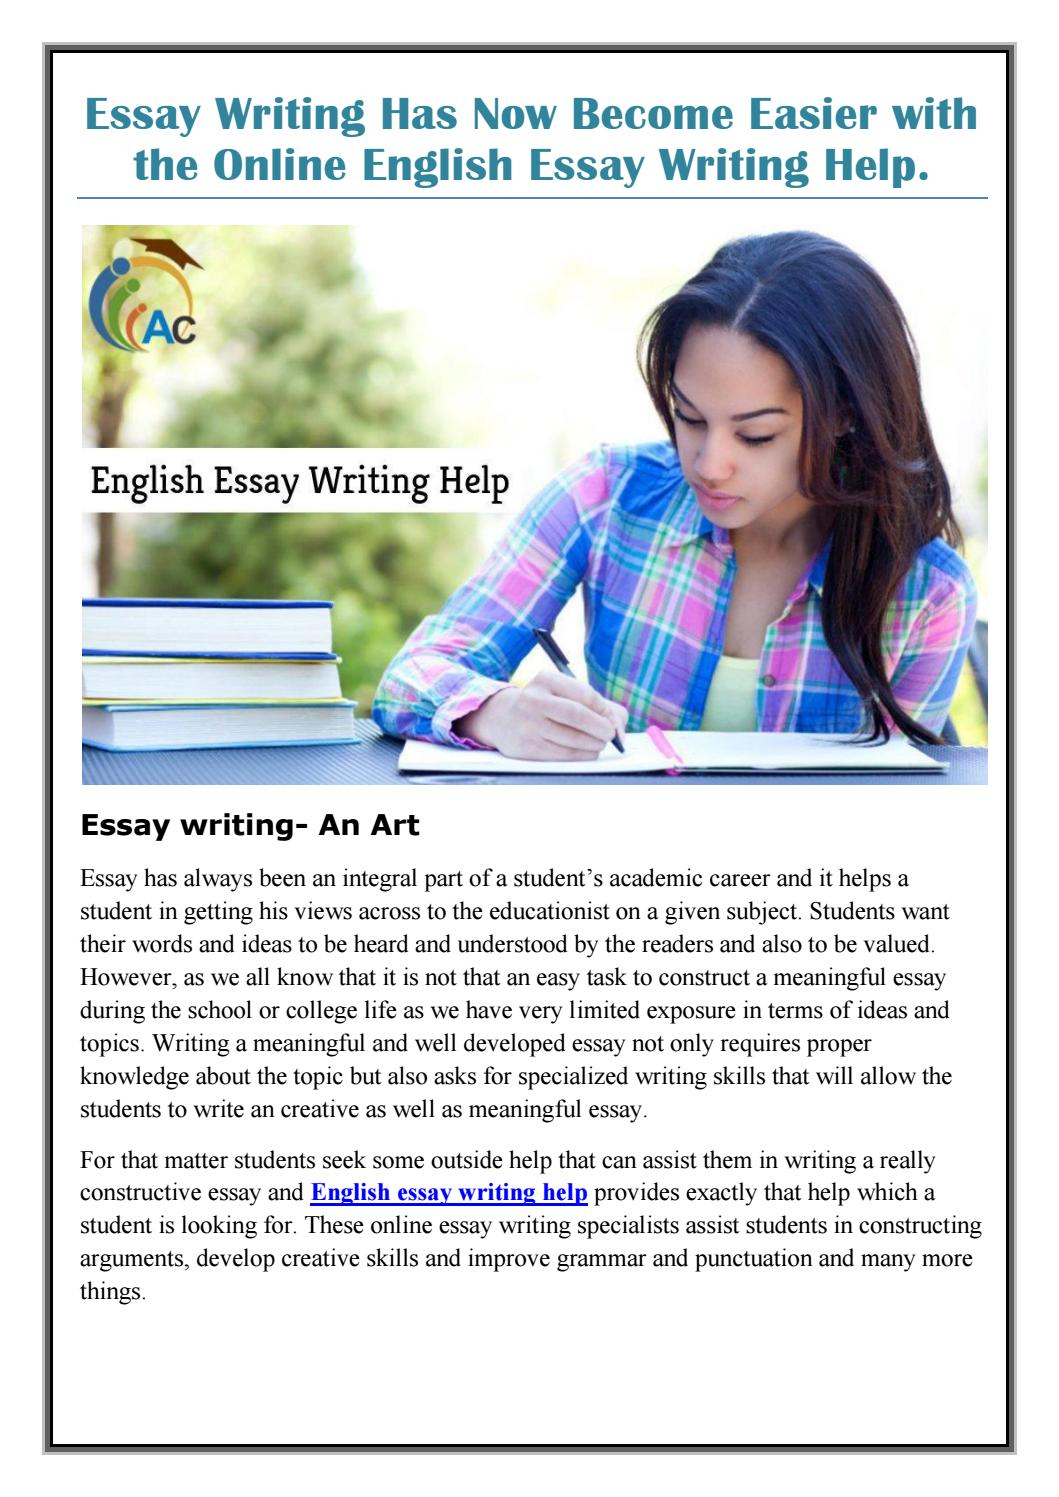 Essay Writing Has Now Become Easier With The Online English Essay  Essay Writing Has Now Become Easier With The Online English Essay Writing  Help By Assignmentconsultancy  Issuu